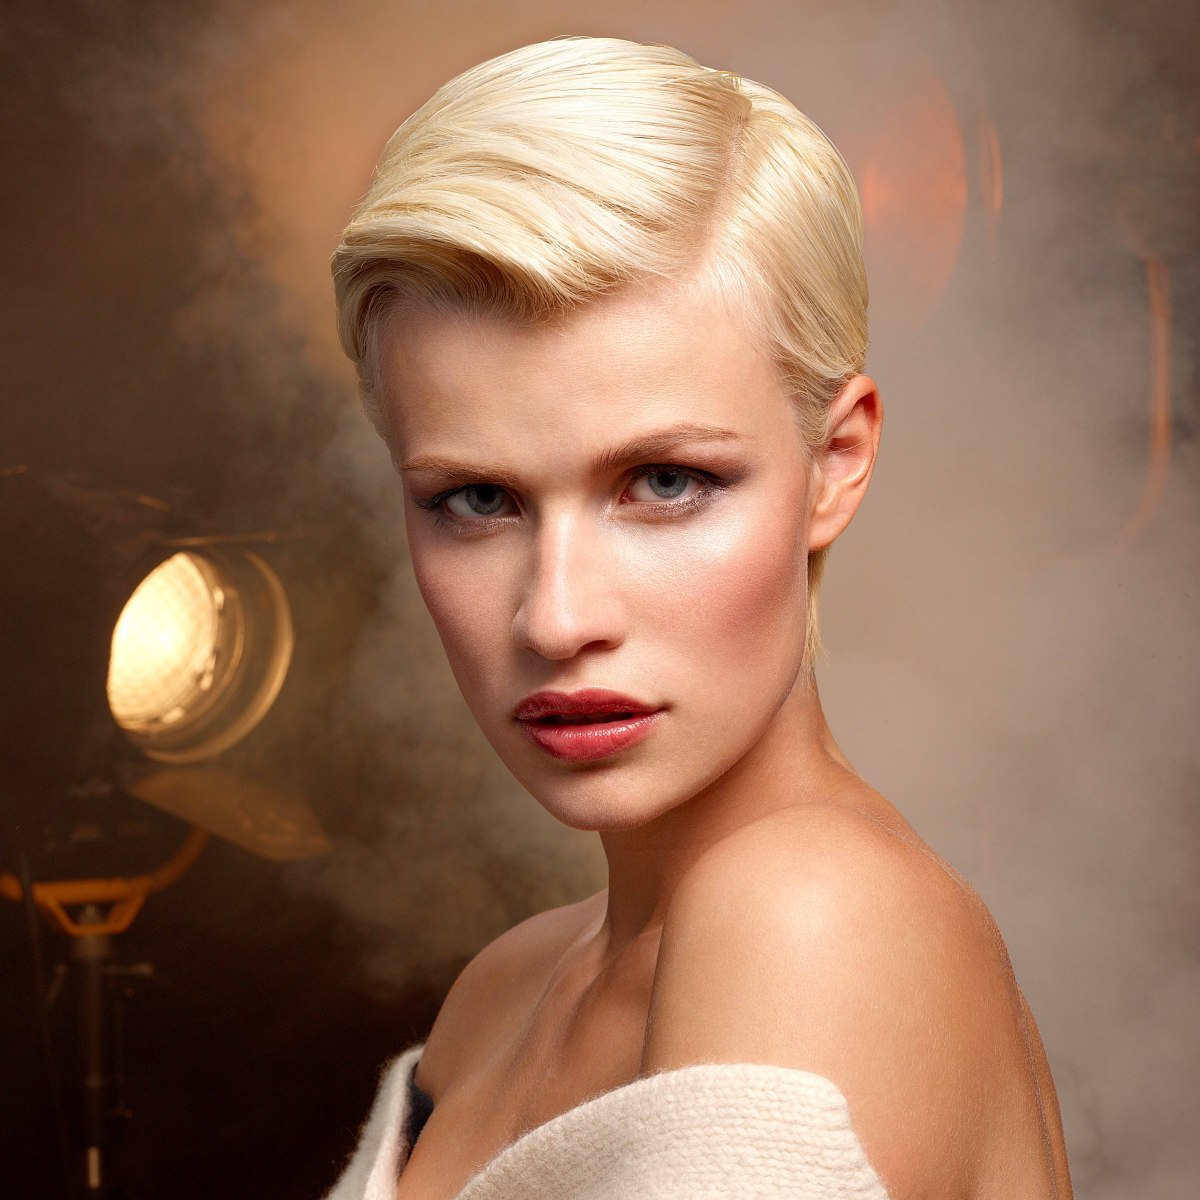 Short hair with a straight side part | 1930s retro styling